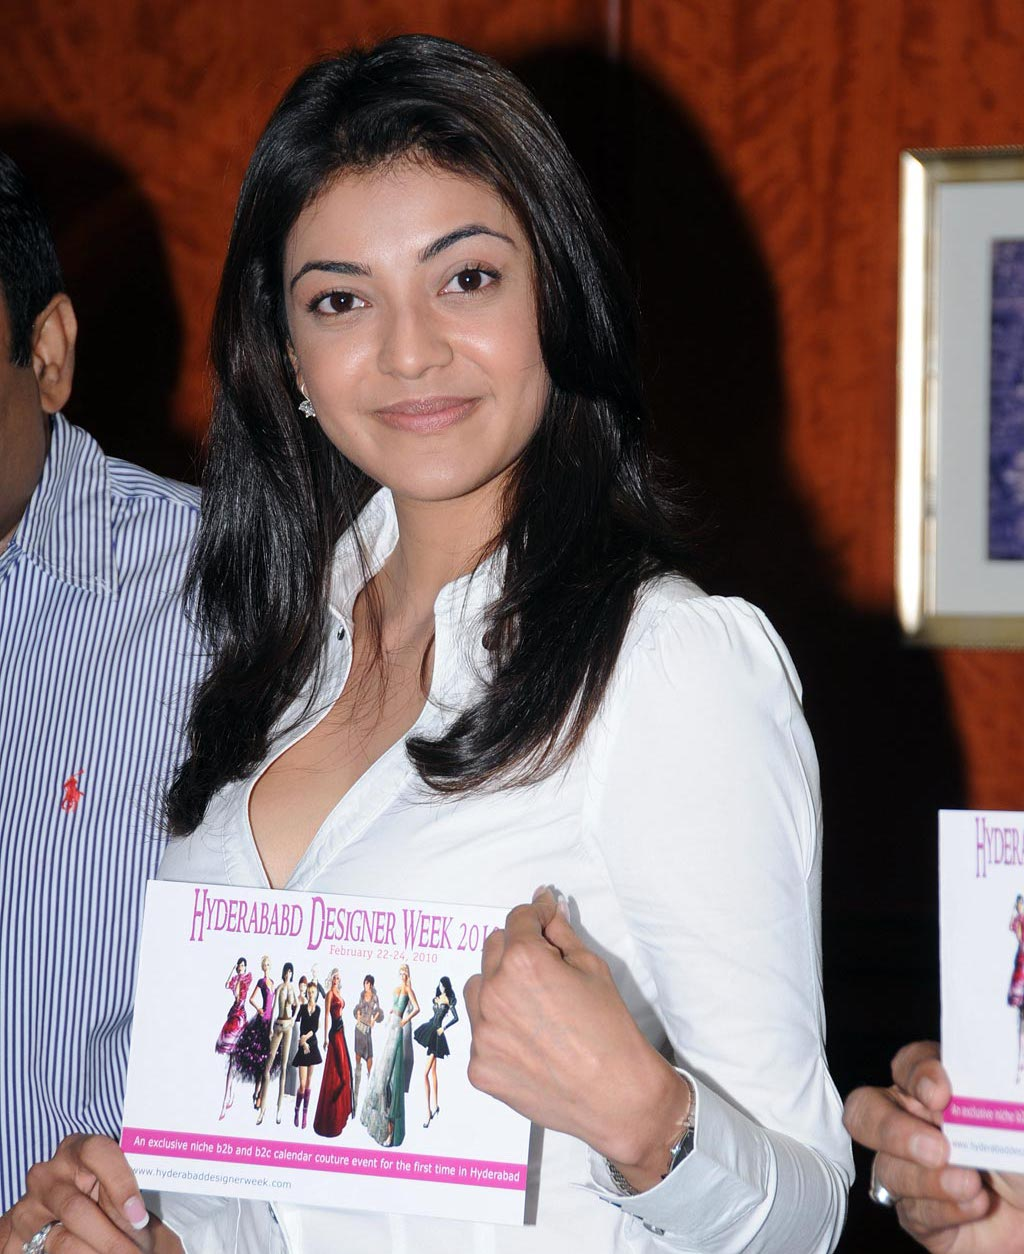 Kajal Agarwal Bra http://www.gossipall.com/topic/4613-kajal-agarwal-in-sexy-white-top-showing-cleavage-and-bra/